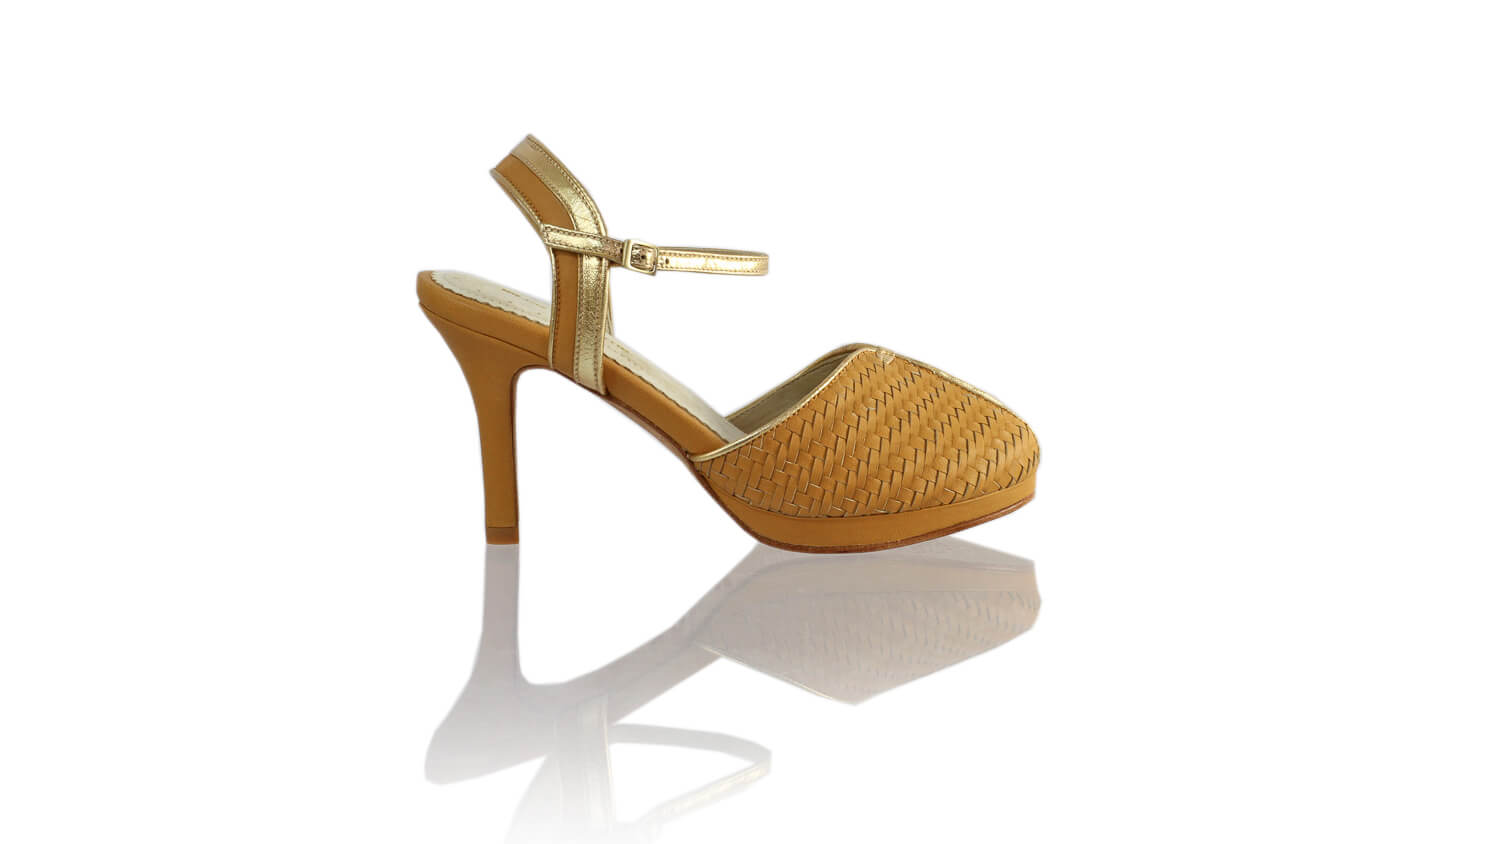 Leather-shoes-Agnes Woven 90mm SH-01 PF - Nude & Gold-pumps highheel-NILUH DJELANTIK-NILUH DJELANTIK